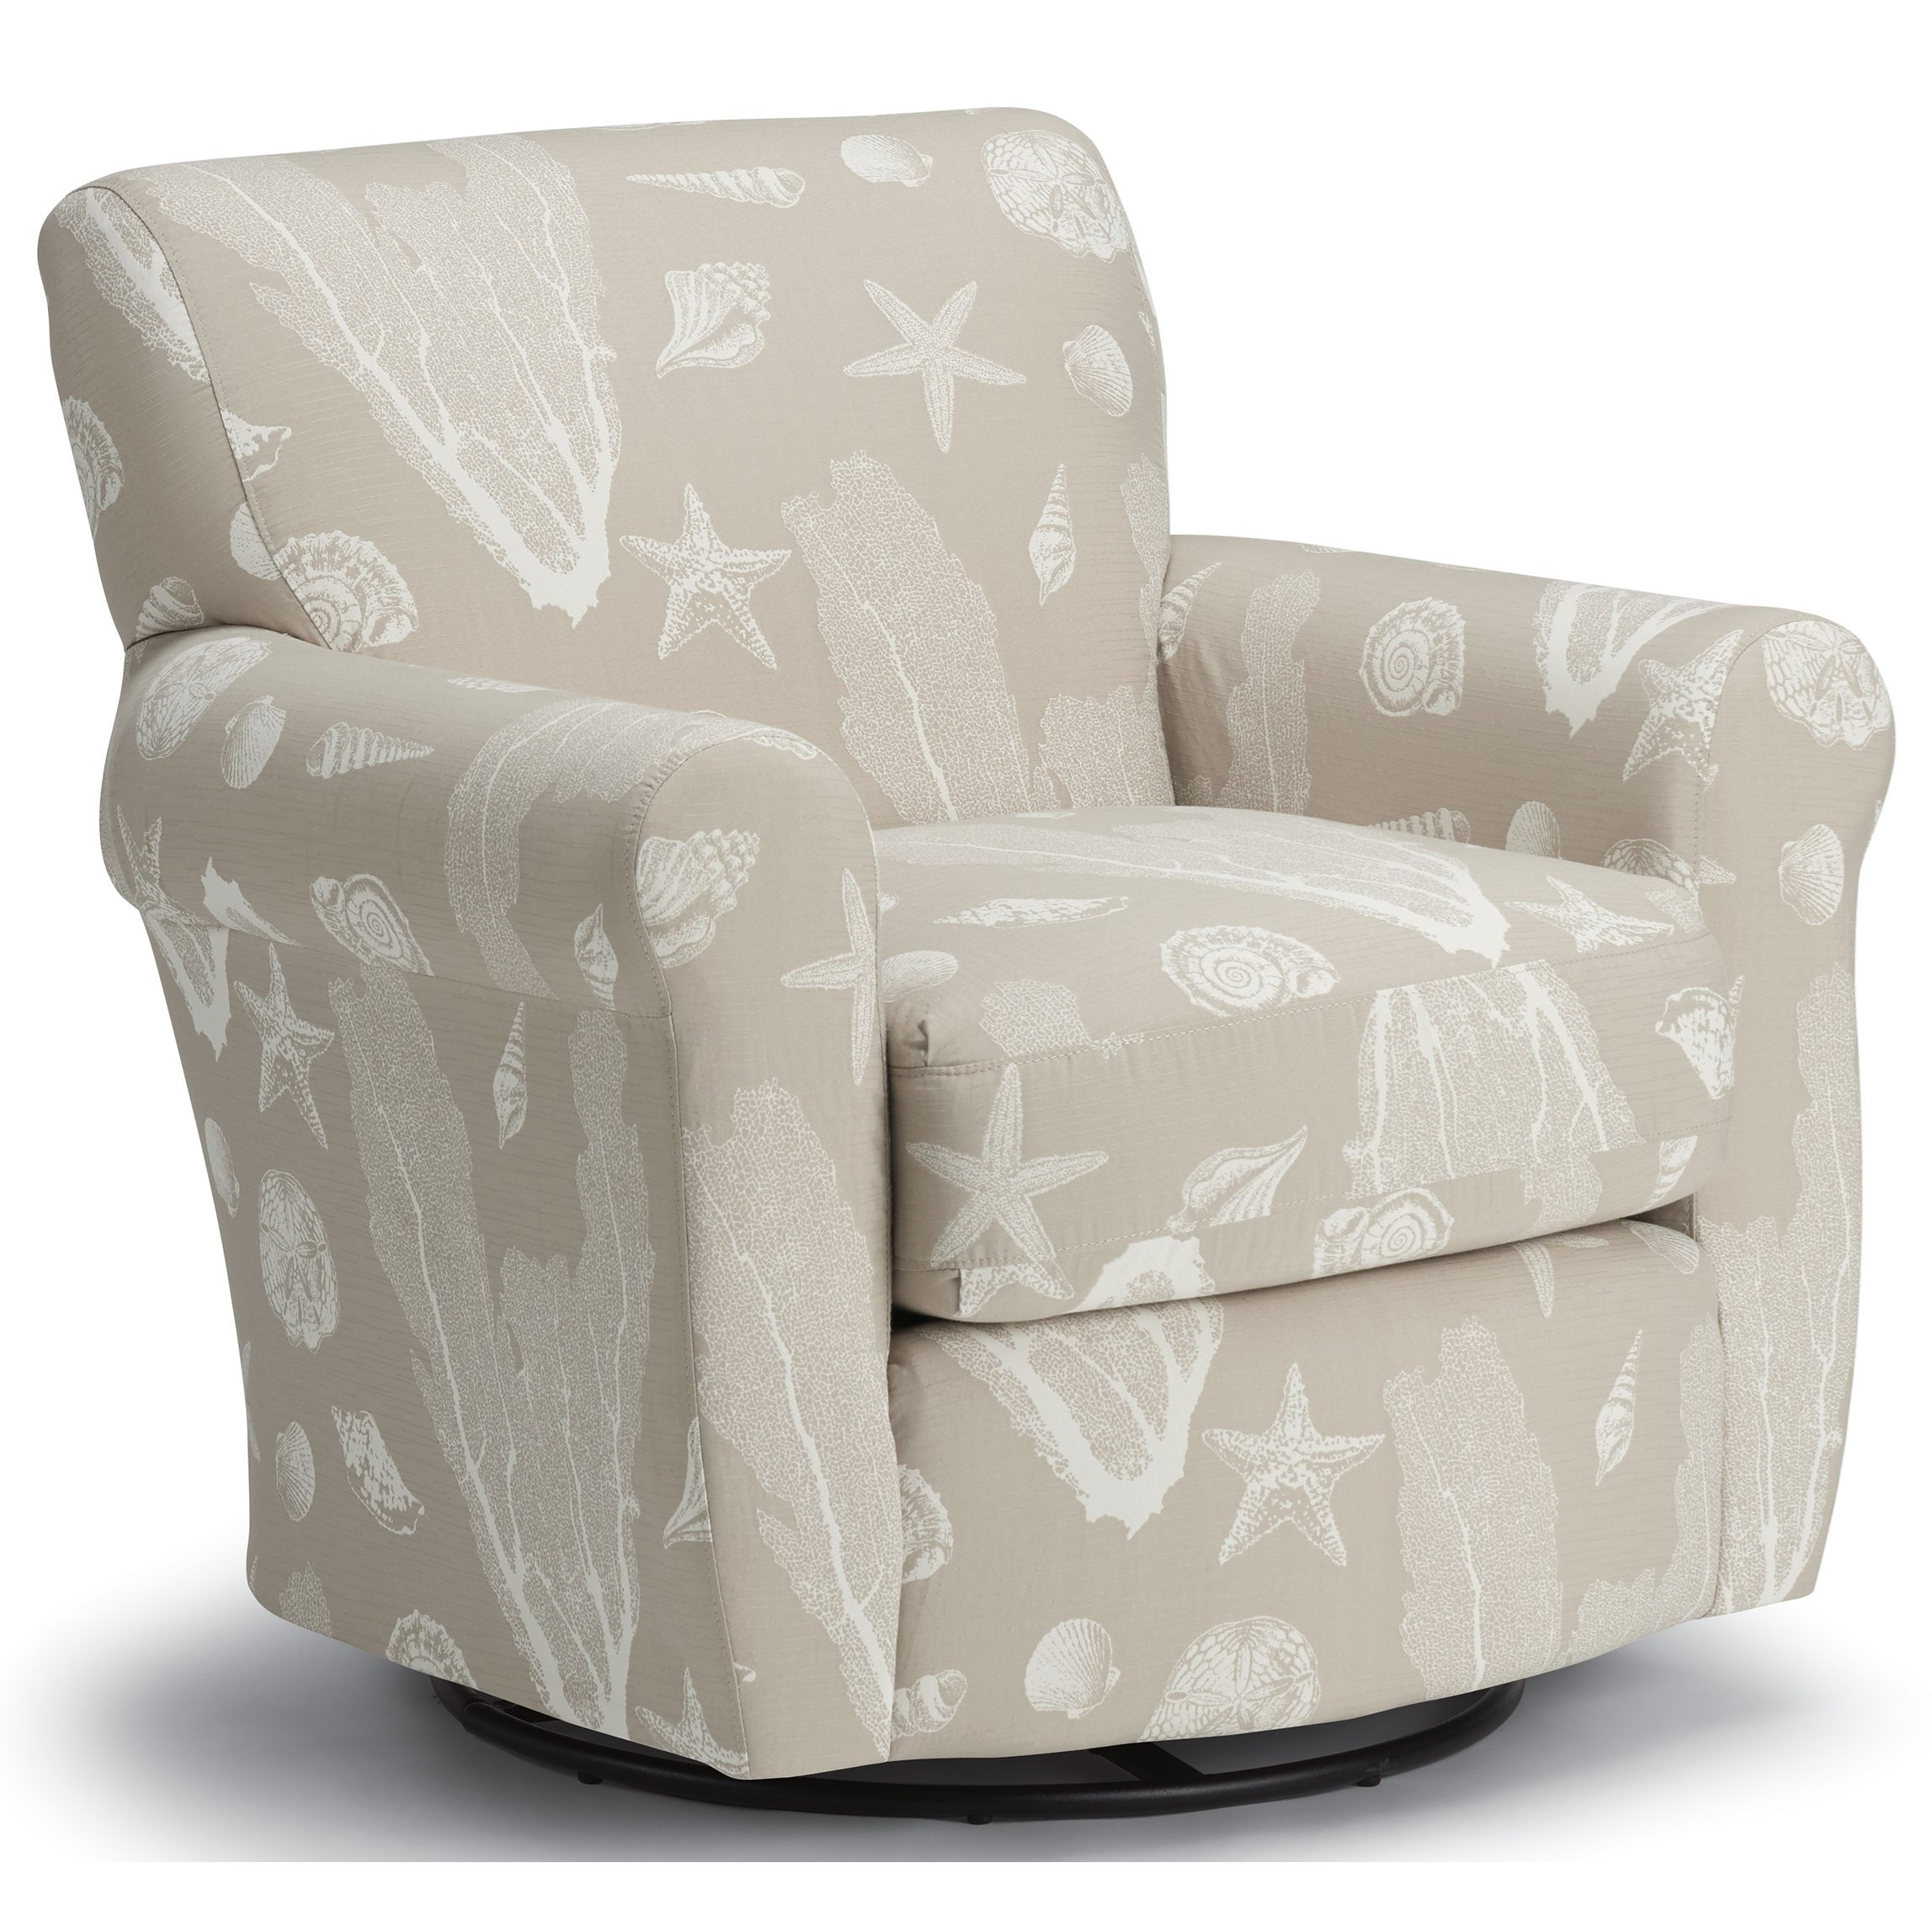 Gemily Swivel Glider Chair by Best Home Furnishings at Esprit Decor Home Furnishings